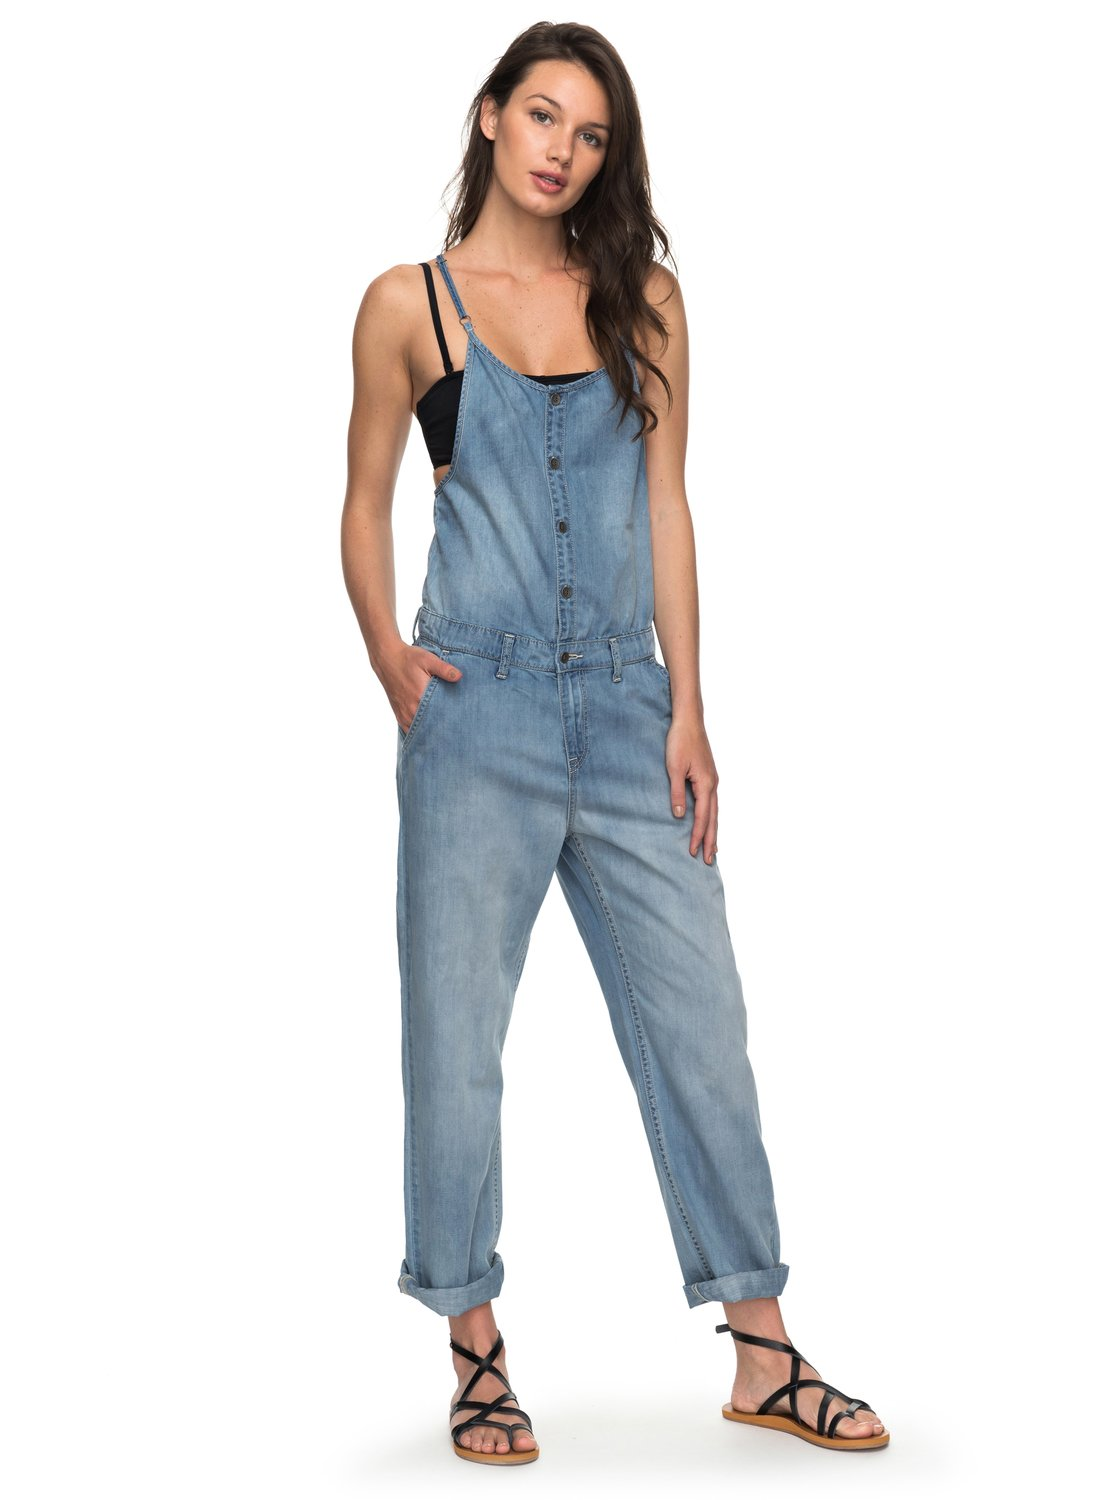 Shop for denim jean overalls online at Target. Free shipping on purchases over $35 and save 5% every day with your Target REDcard.